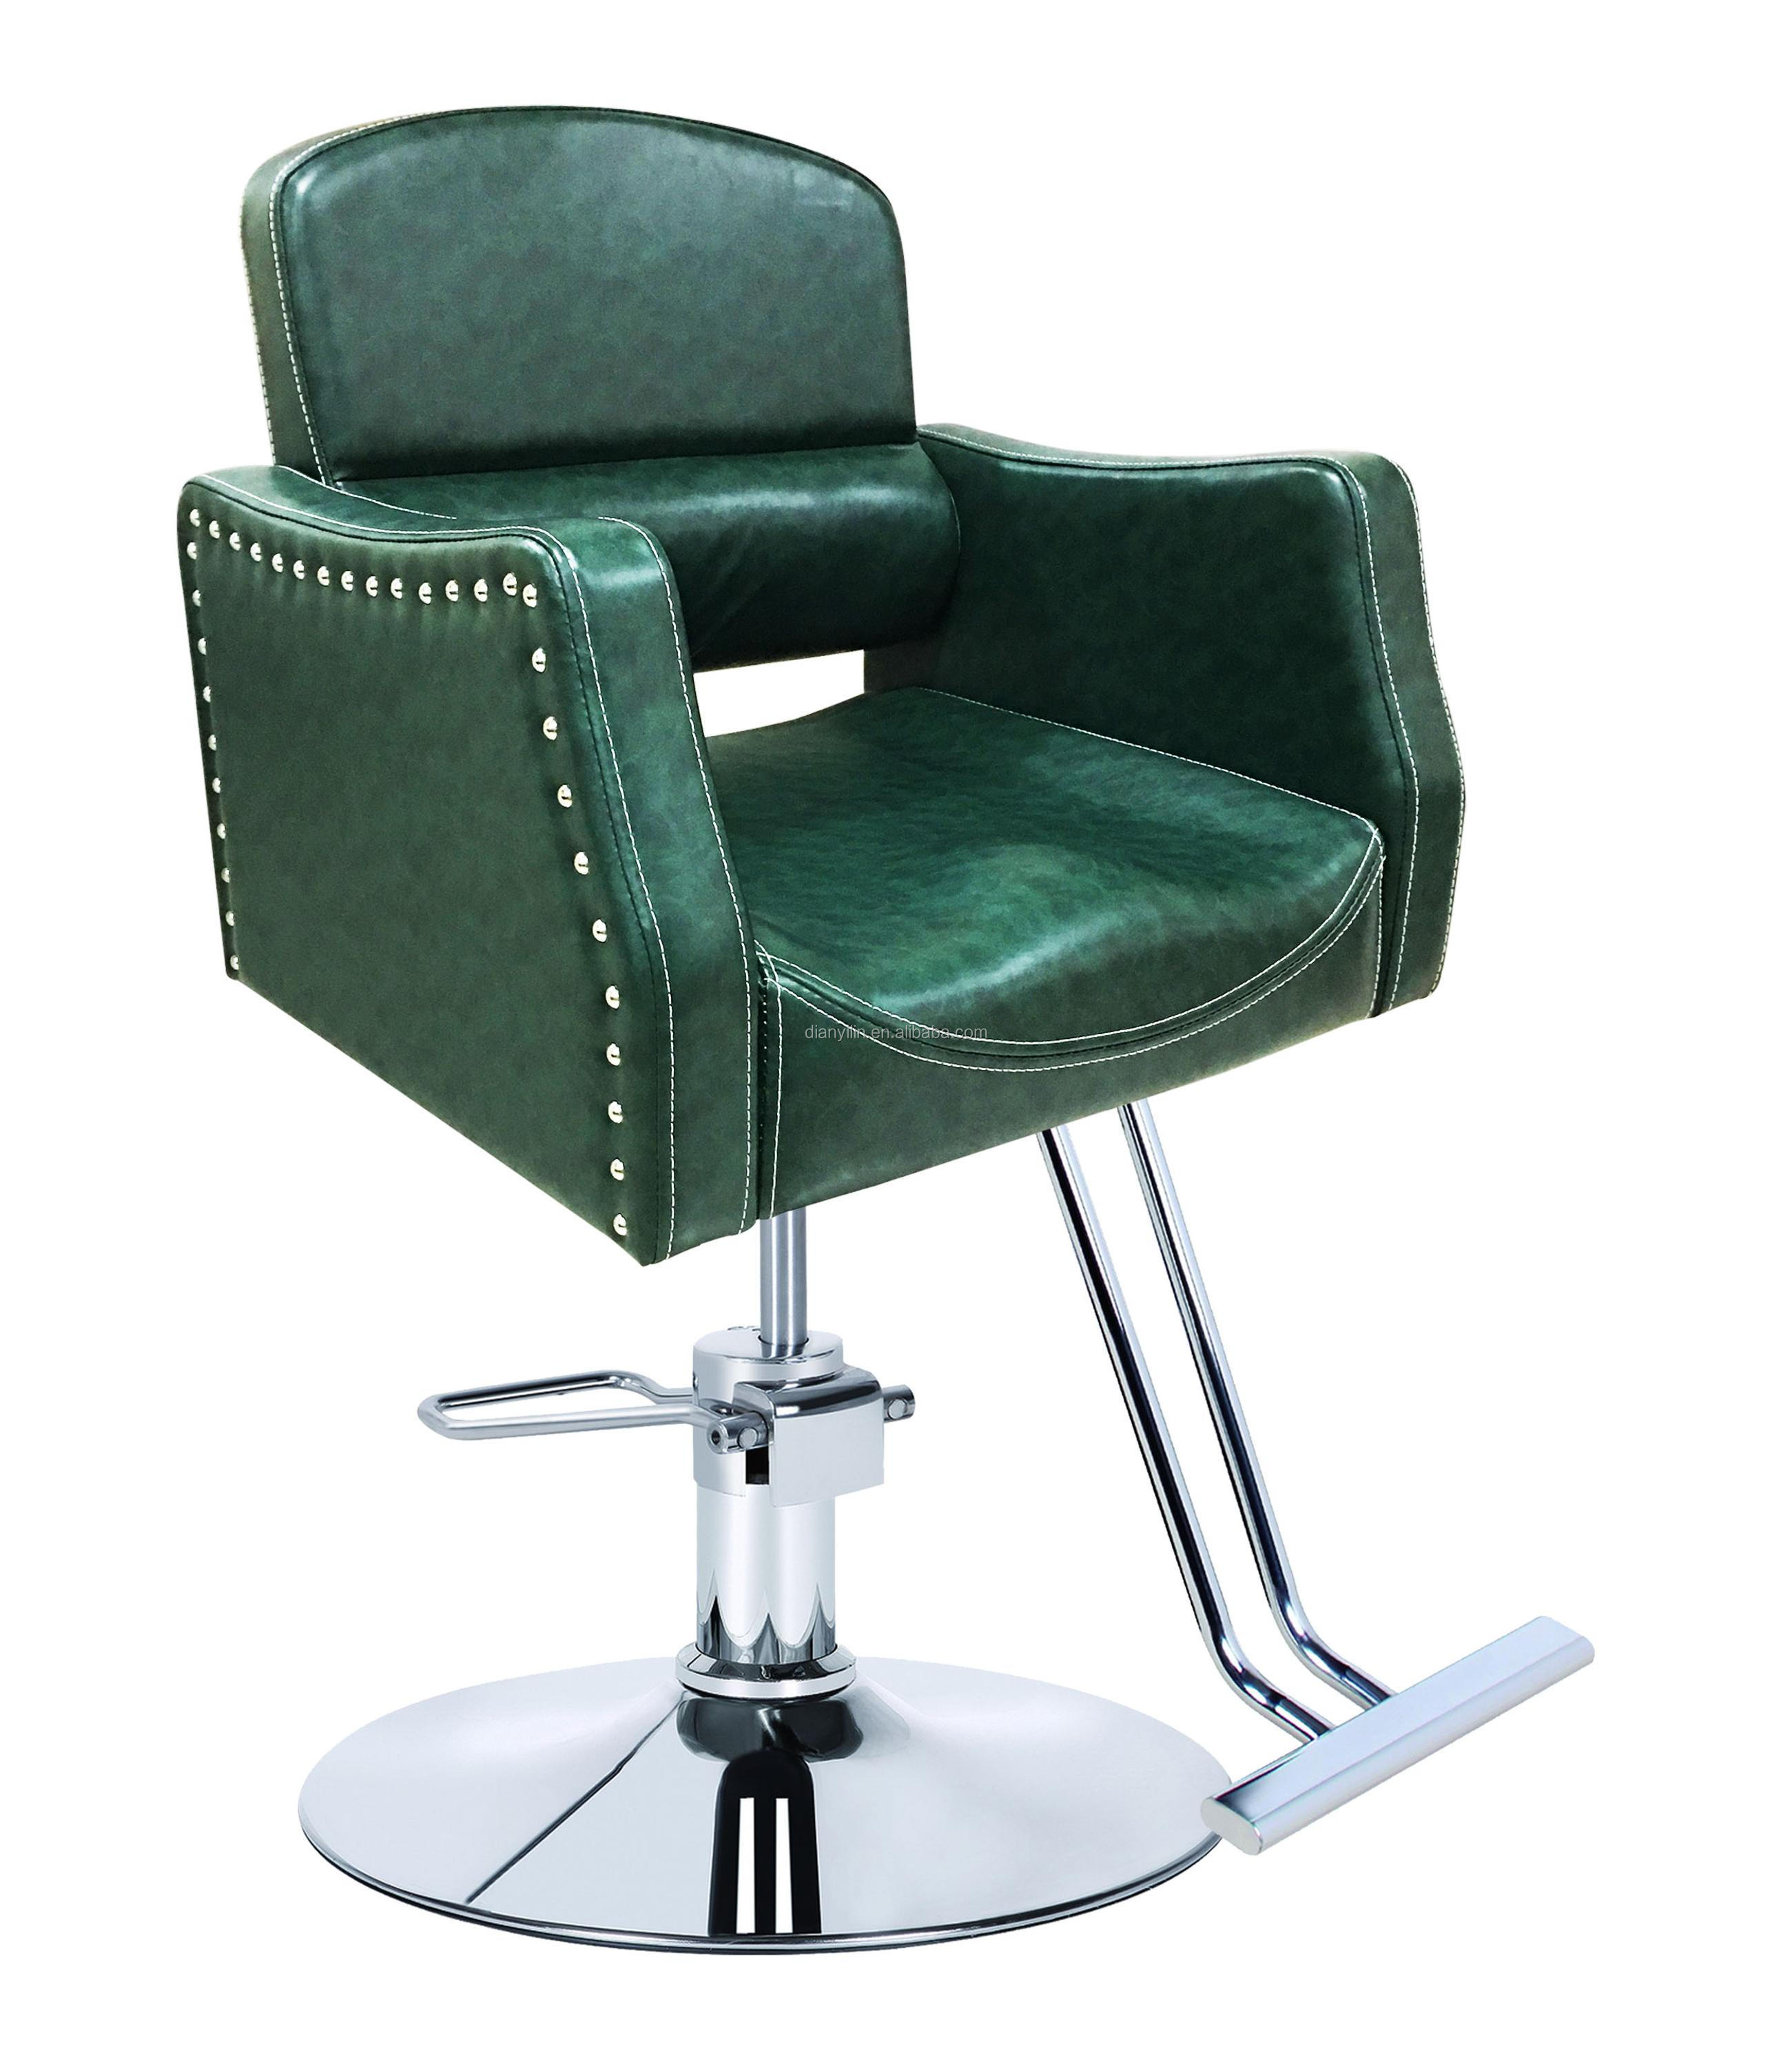 Beautiful Chairs Hairdressing Salon Styling Chairs Salon Beautiful Chairs Barber Chairs For Sale 979 Buy Hair Salon Chairs For Sale Barber Chair For Children Barber